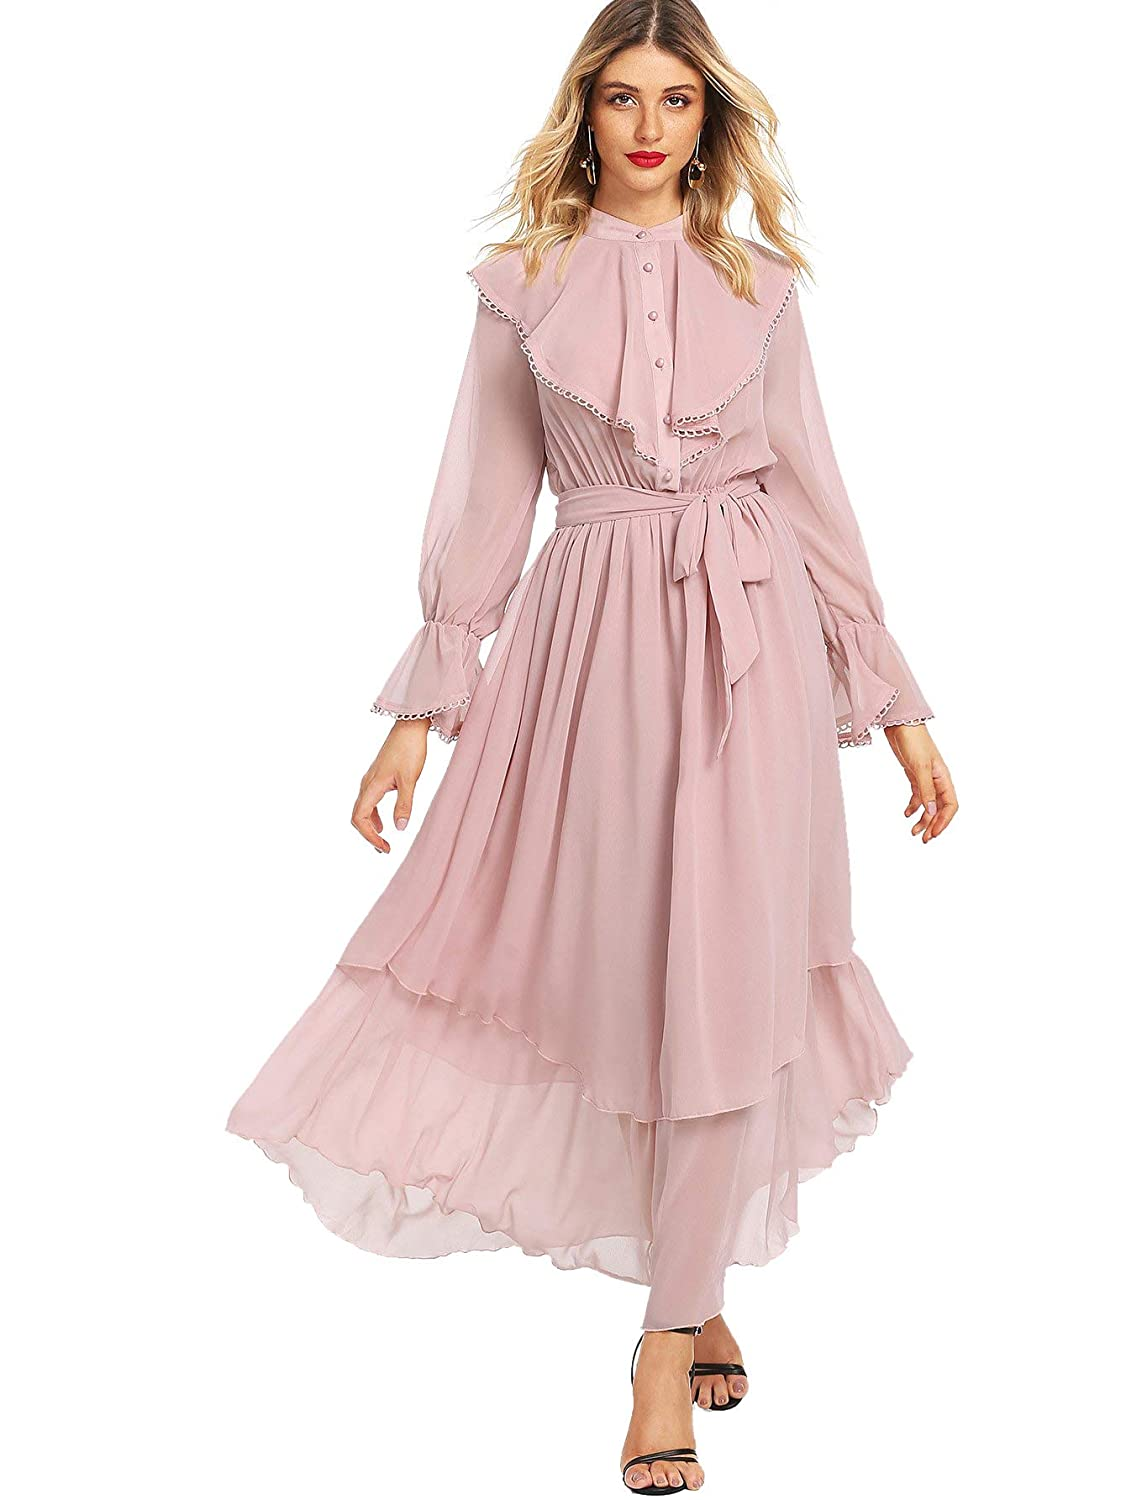 70s Outfits – 70s Style Ideas for Women Milumia Womens Contrast Lace Ruffle Detail Crochet Trim Belted Tiered Layer Flowy Maxi Dress $26.99 AT vintagedancer.com